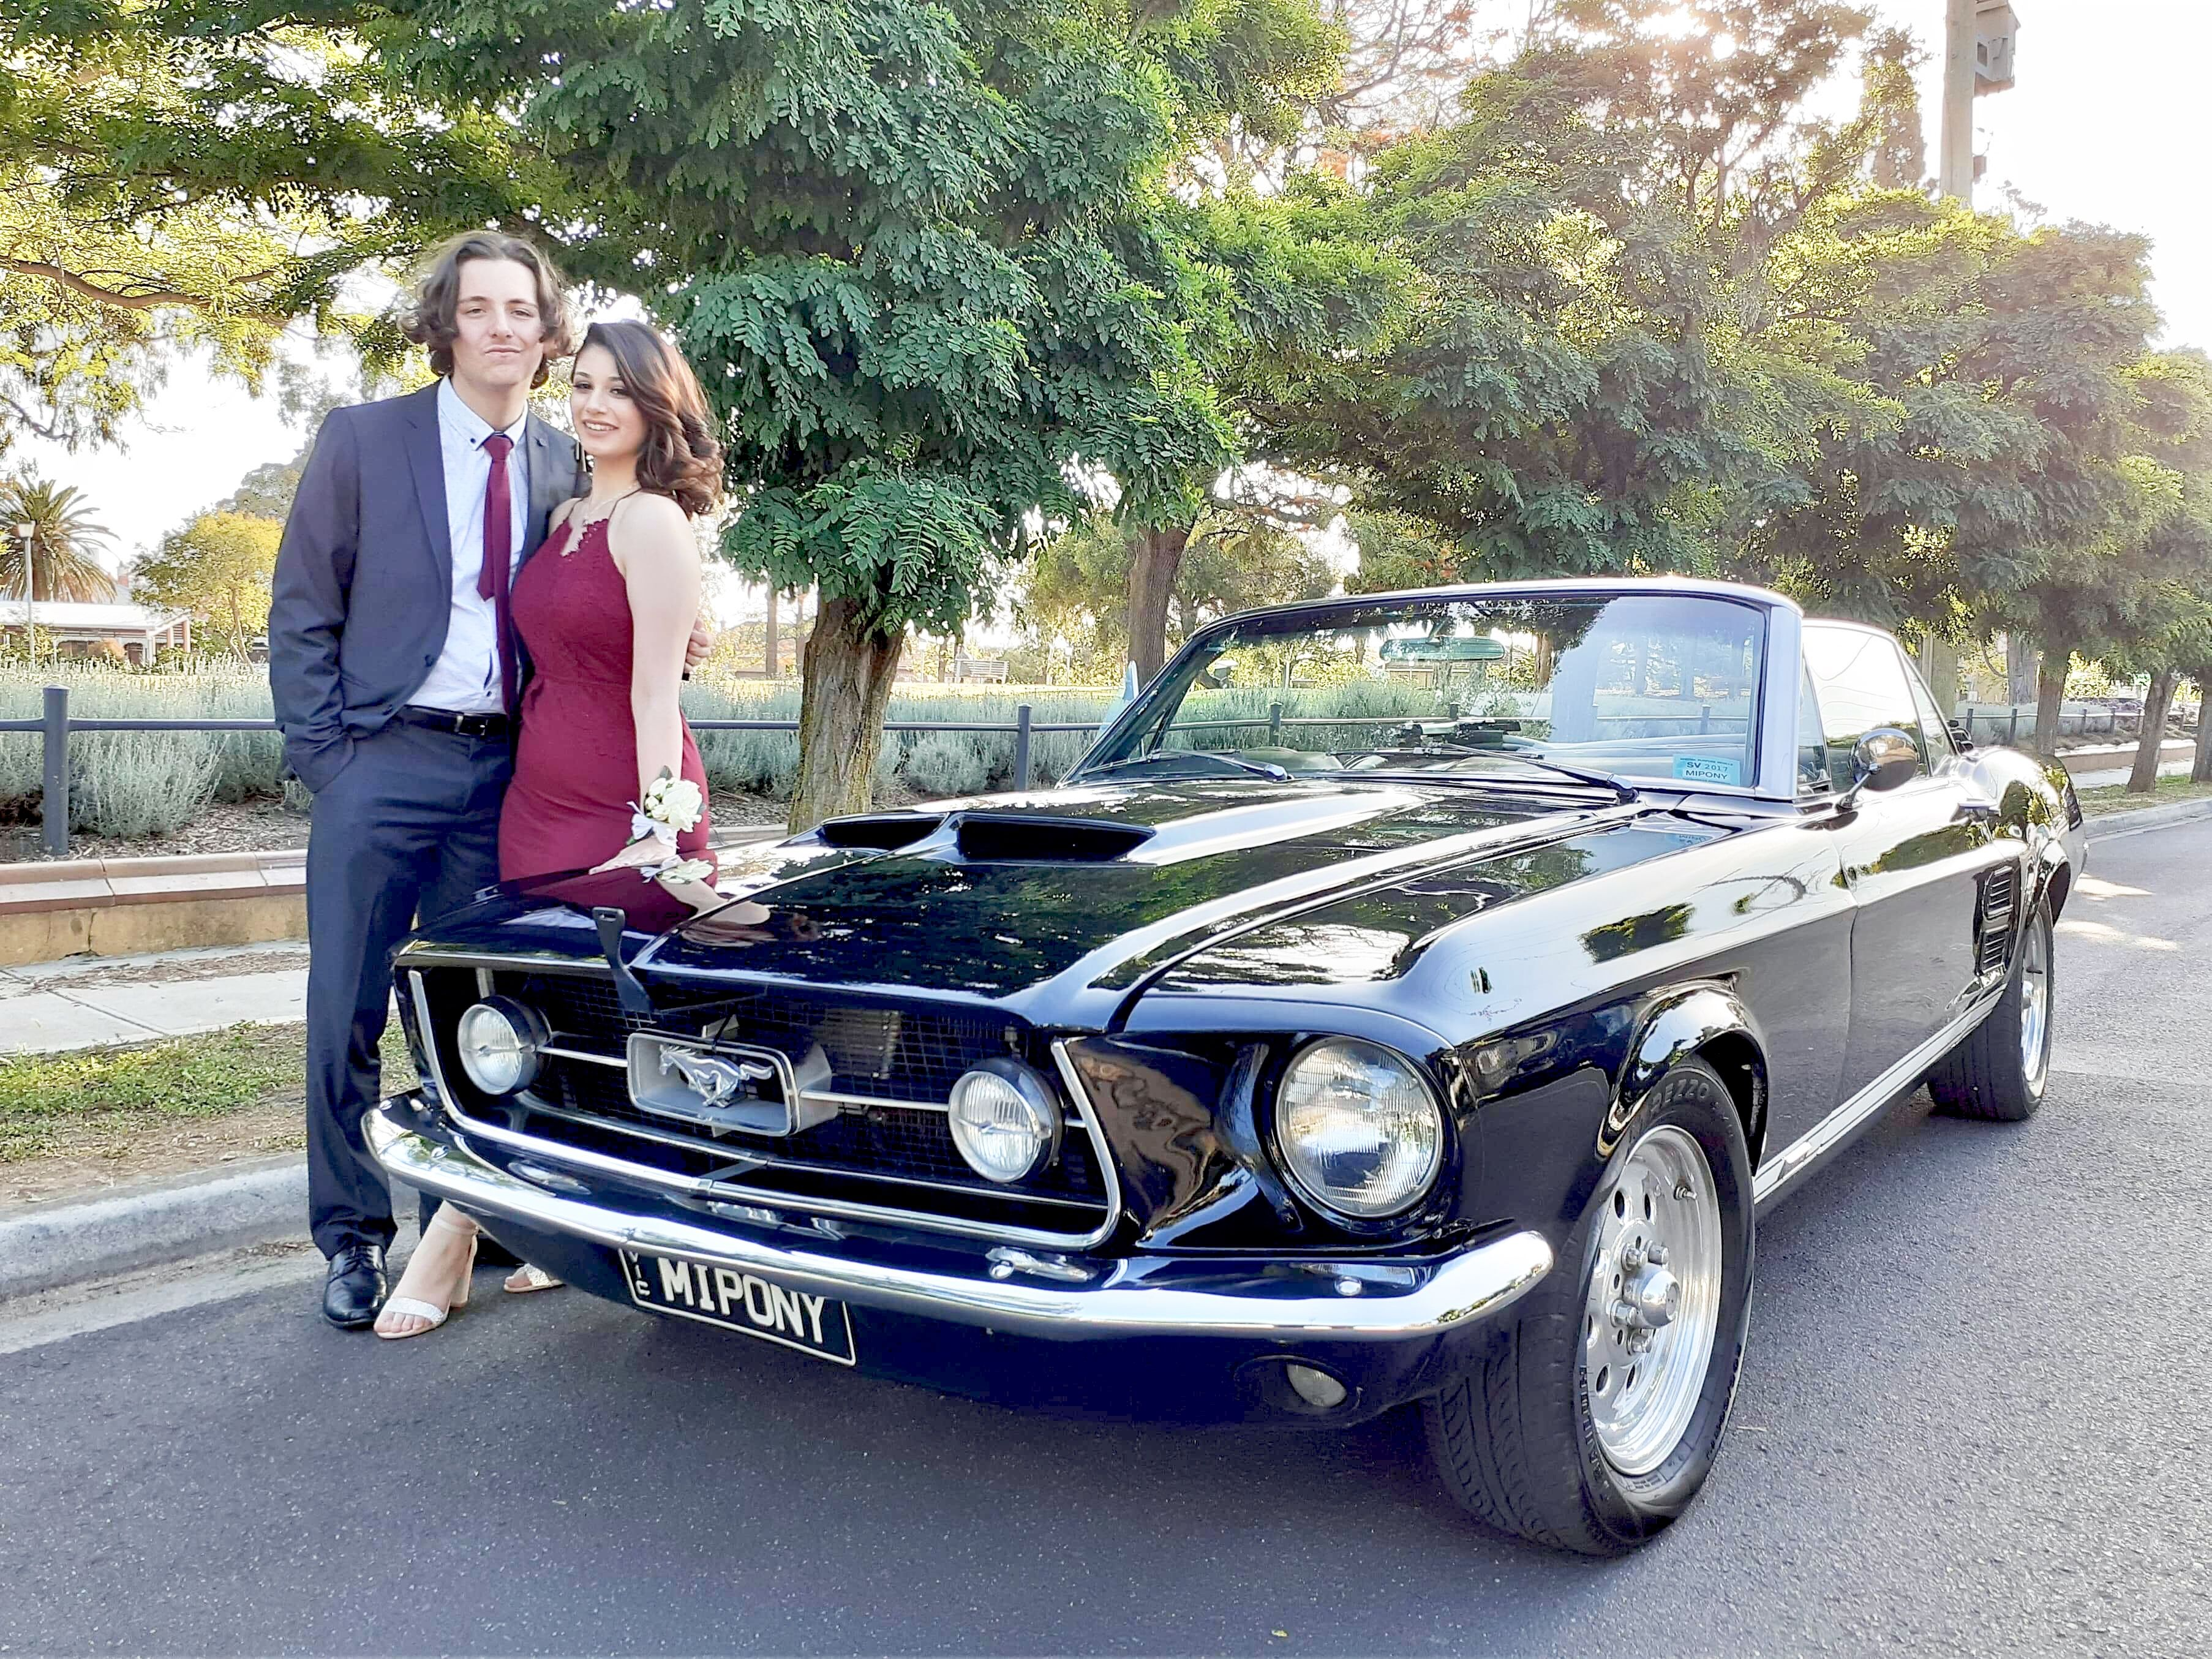 Mustangs In Black 1967 Gt Convertible Ford Mustang In Melbourne For A High School Formal Mustang Convertible Ford Mustang Mustang